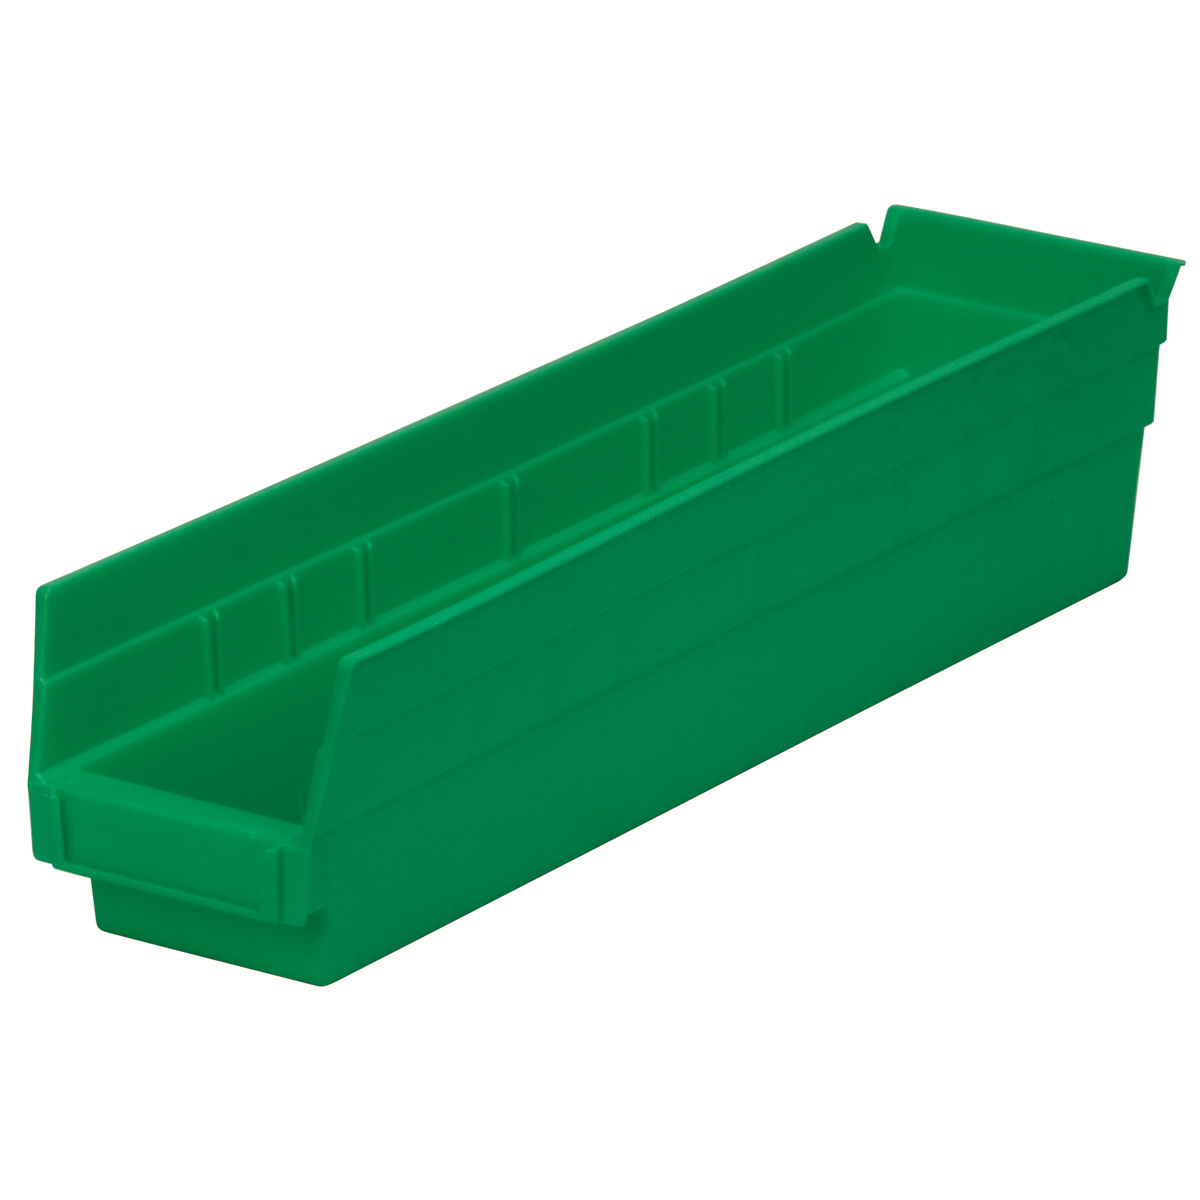 Shelf Bin 17-7/8 x 4-1/8 x 4, Green (30128GREEN).  This item sold in carton quantities of 12.